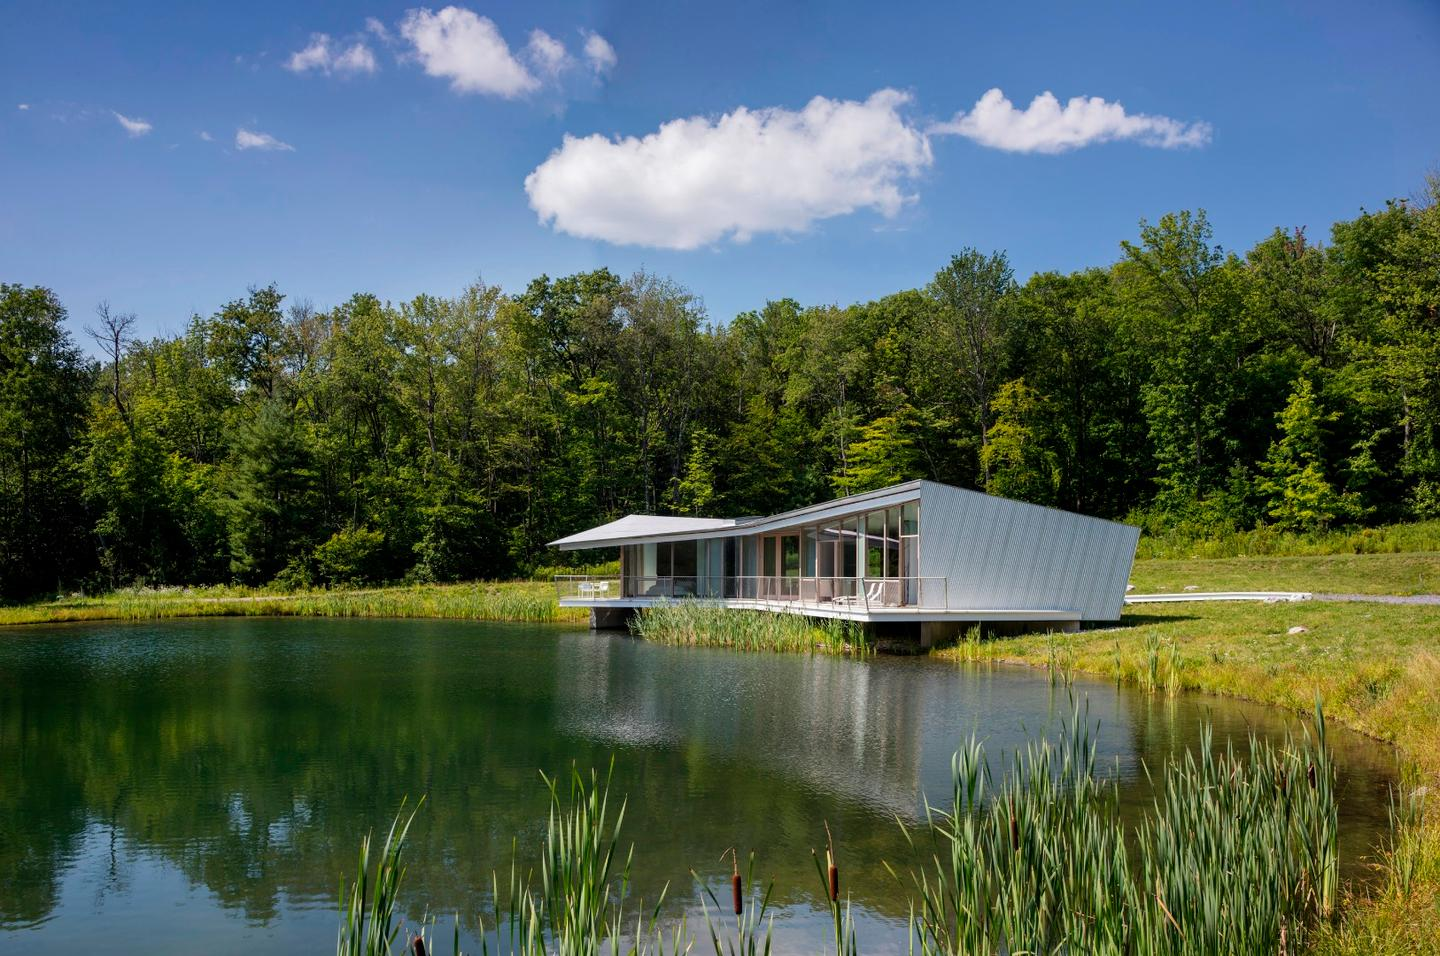 """Honors in the Architecture category ofthe AIANY2019 Design Awards: """"Ephemeral Edge"""" in Austerlitz NY, by Dean/Wolf Architects"""